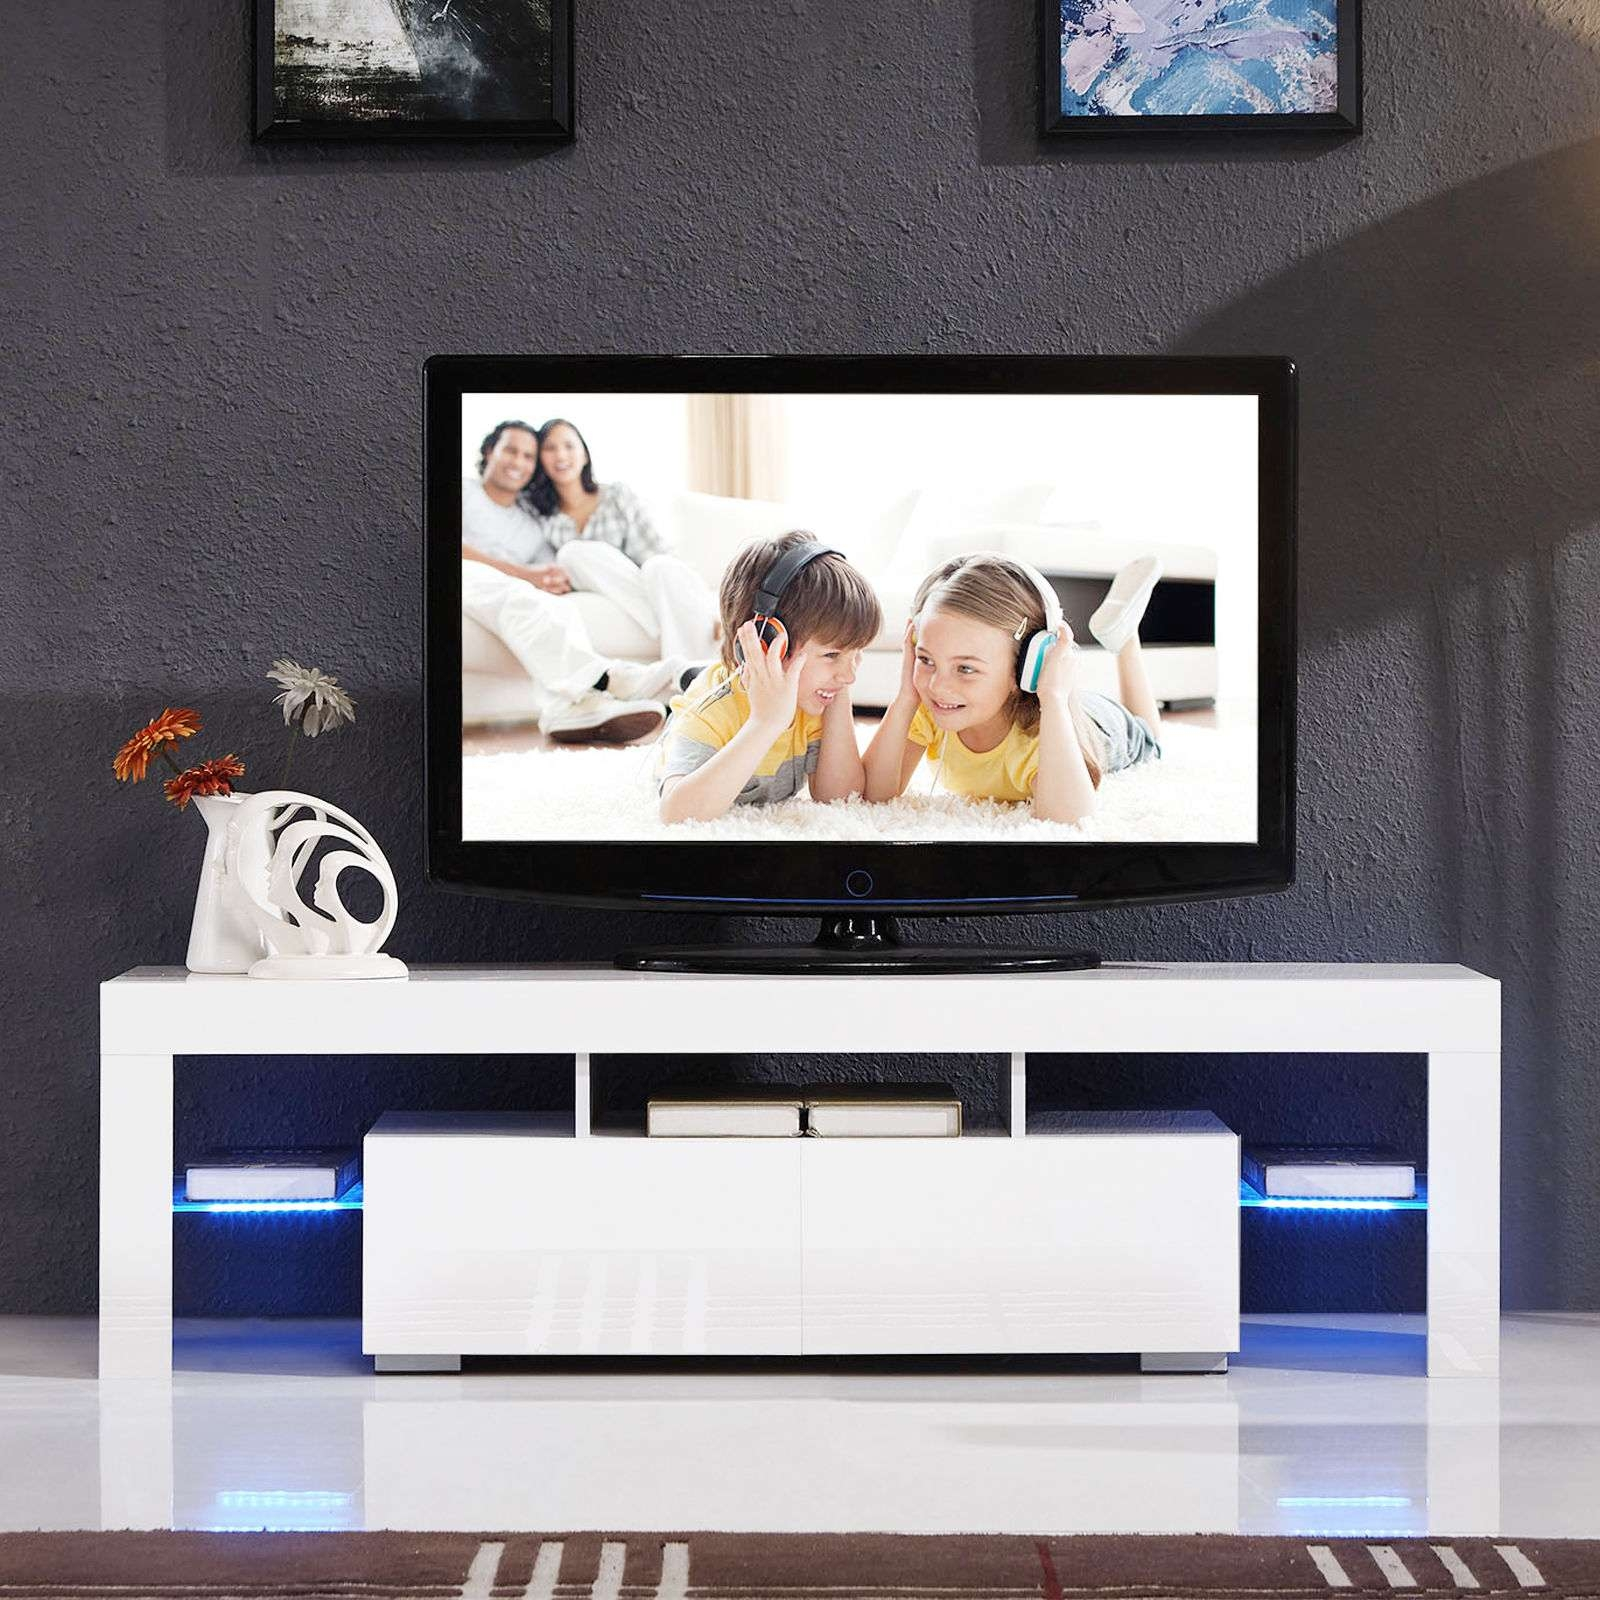 High Gloss White Tv Stand Unit Cabinet W/led Shelves 2 Drawers Throughout Gloss White Tv Cabinets (View 9 of 20)